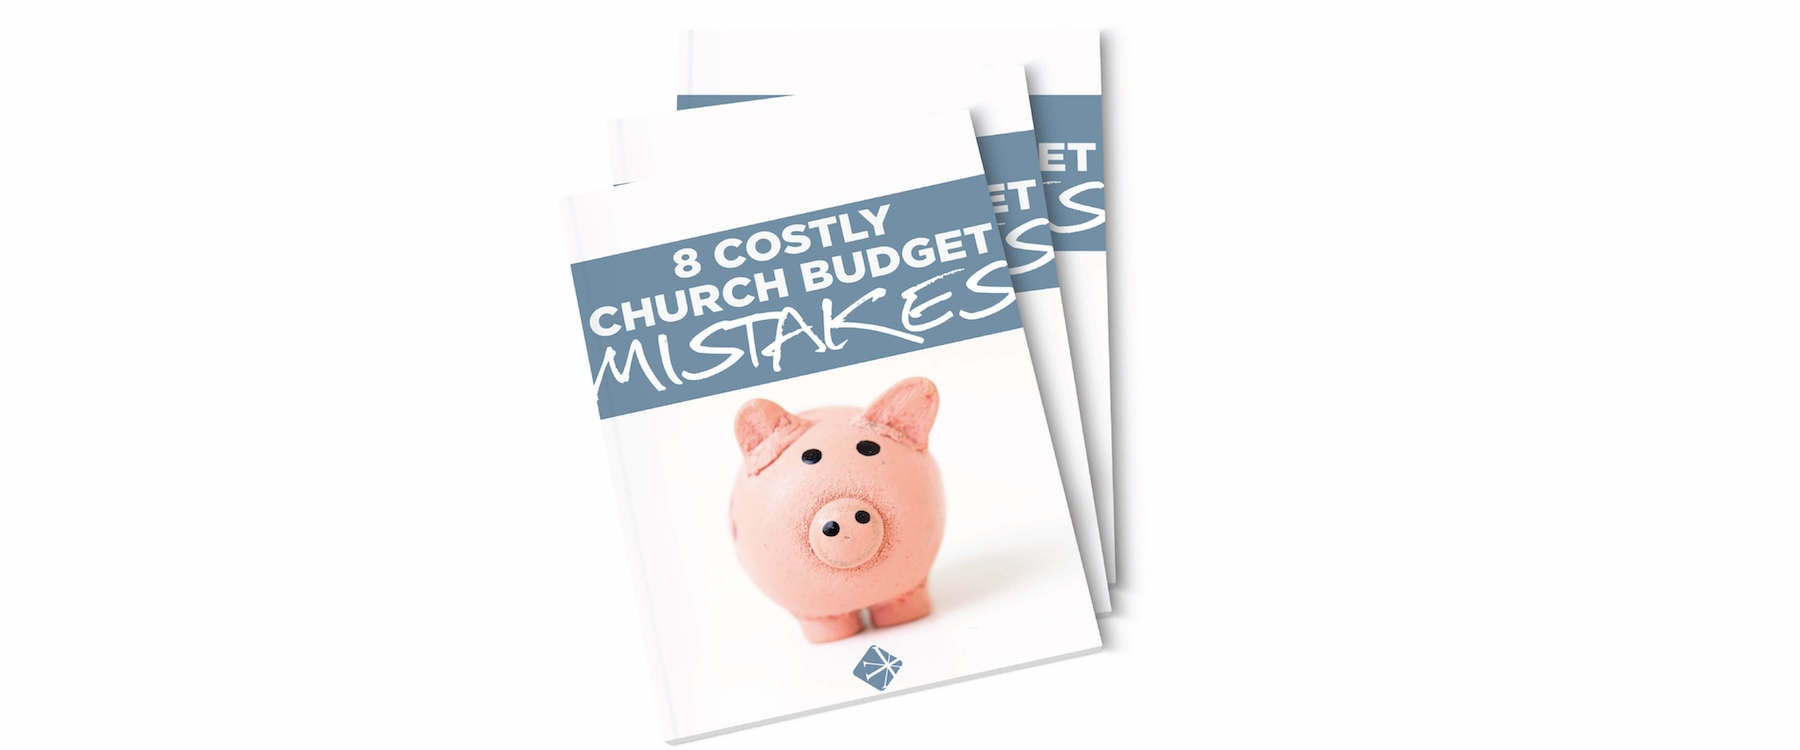 8_Costly_Church_Budget_Mistakes-3.jpg